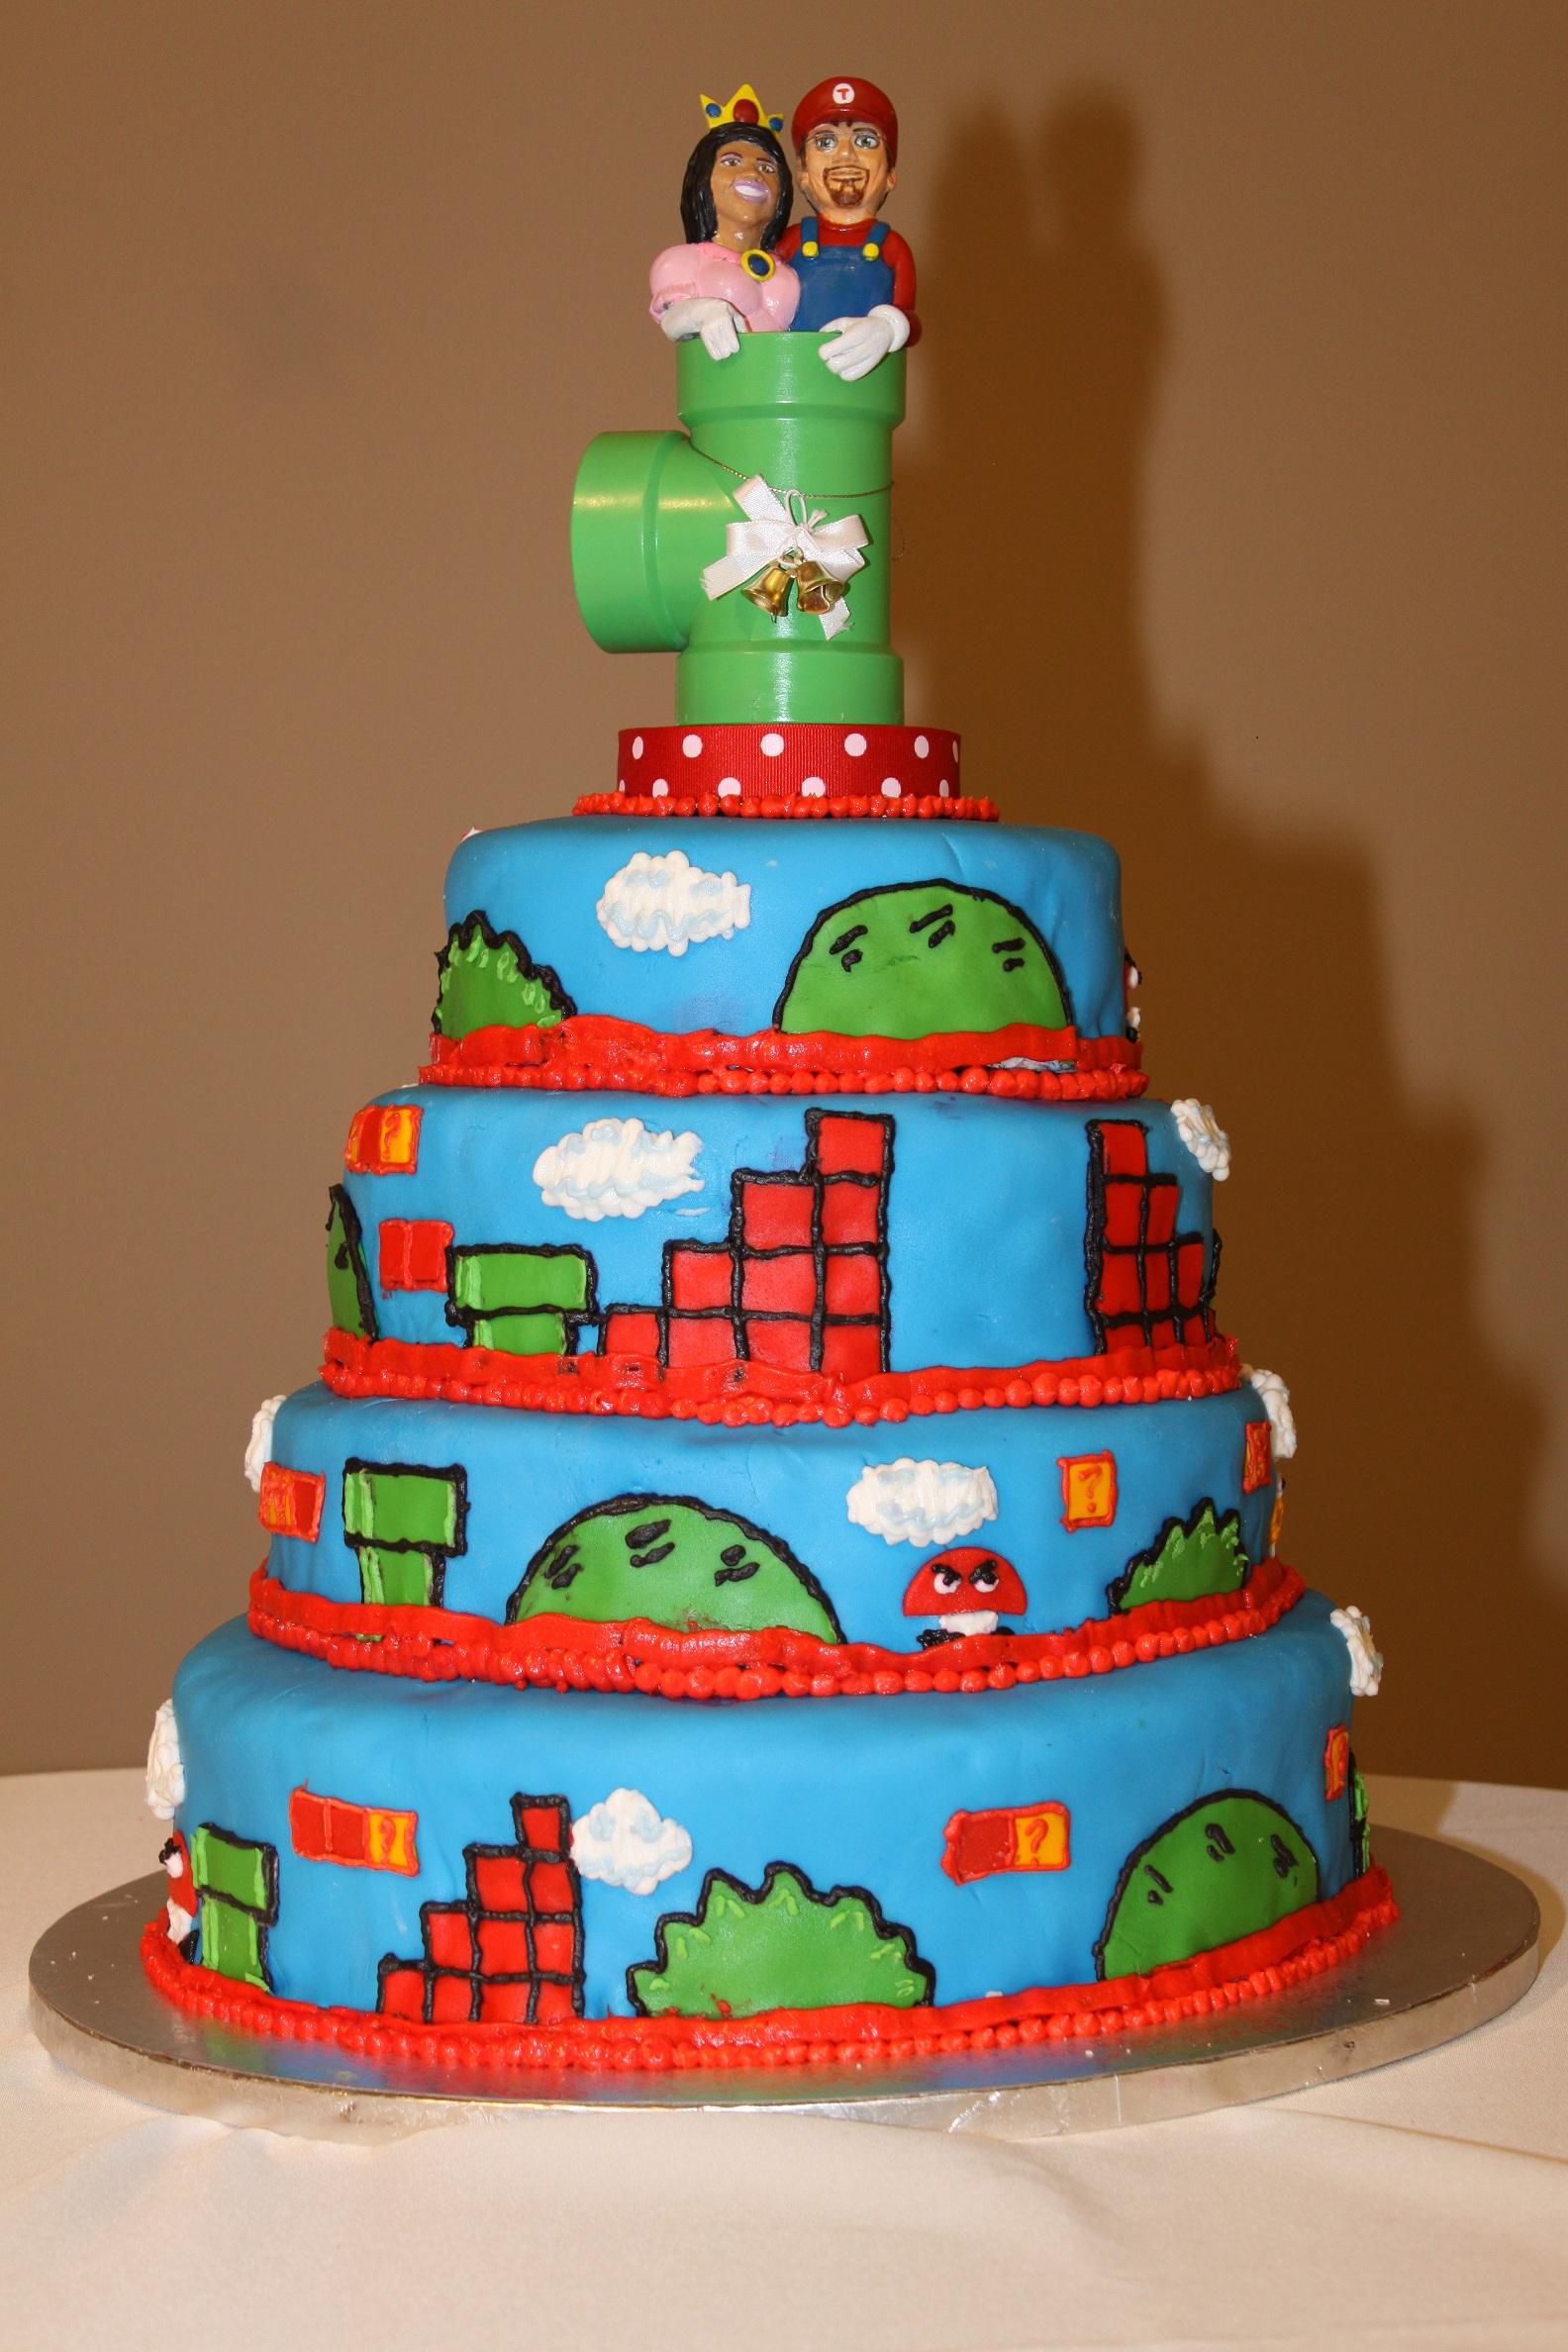 Viralands 15 Of The Most Dumb Wedding Cakes I Have Seen In My Whole Life R